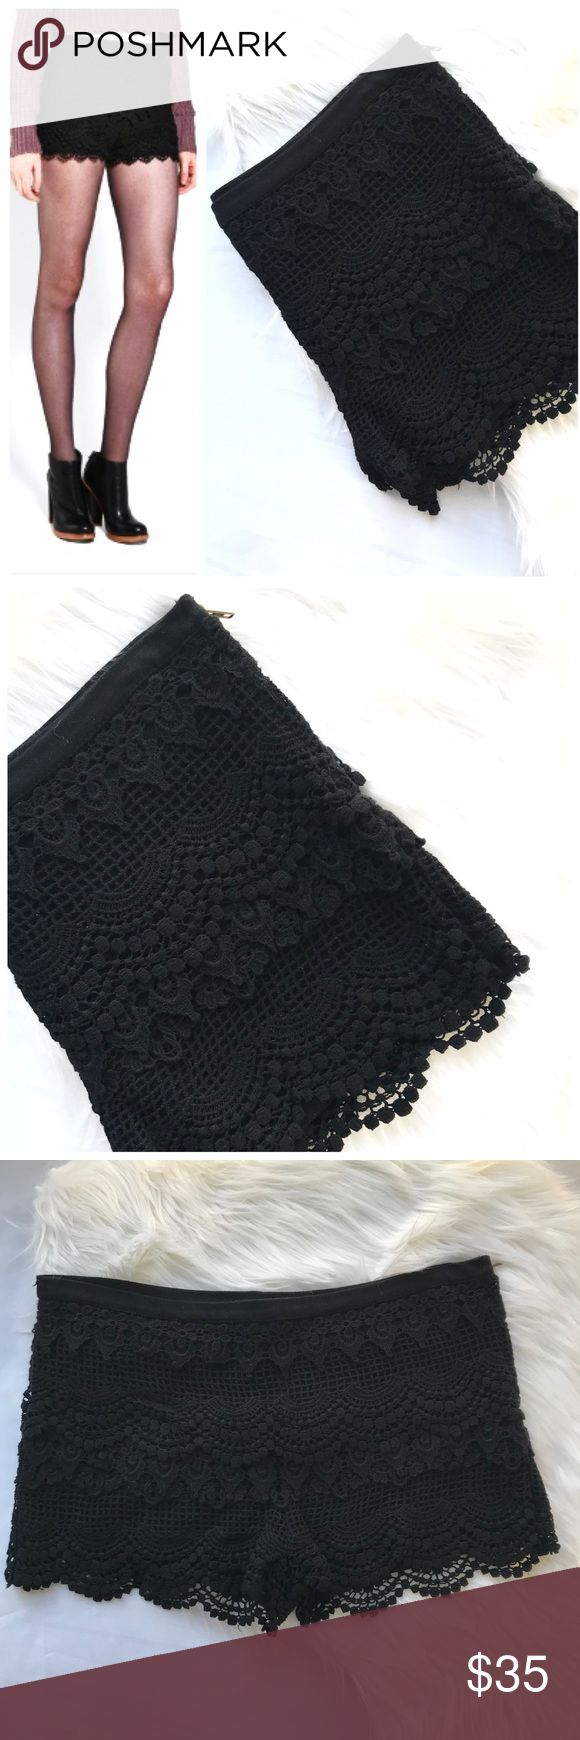 I just added this listing on Poshmark: Pins & Needles Black Crochet Shorts. #shopmycloset #poshmark #fashion #shopping #style #forsale #Pins & Needles #Pants